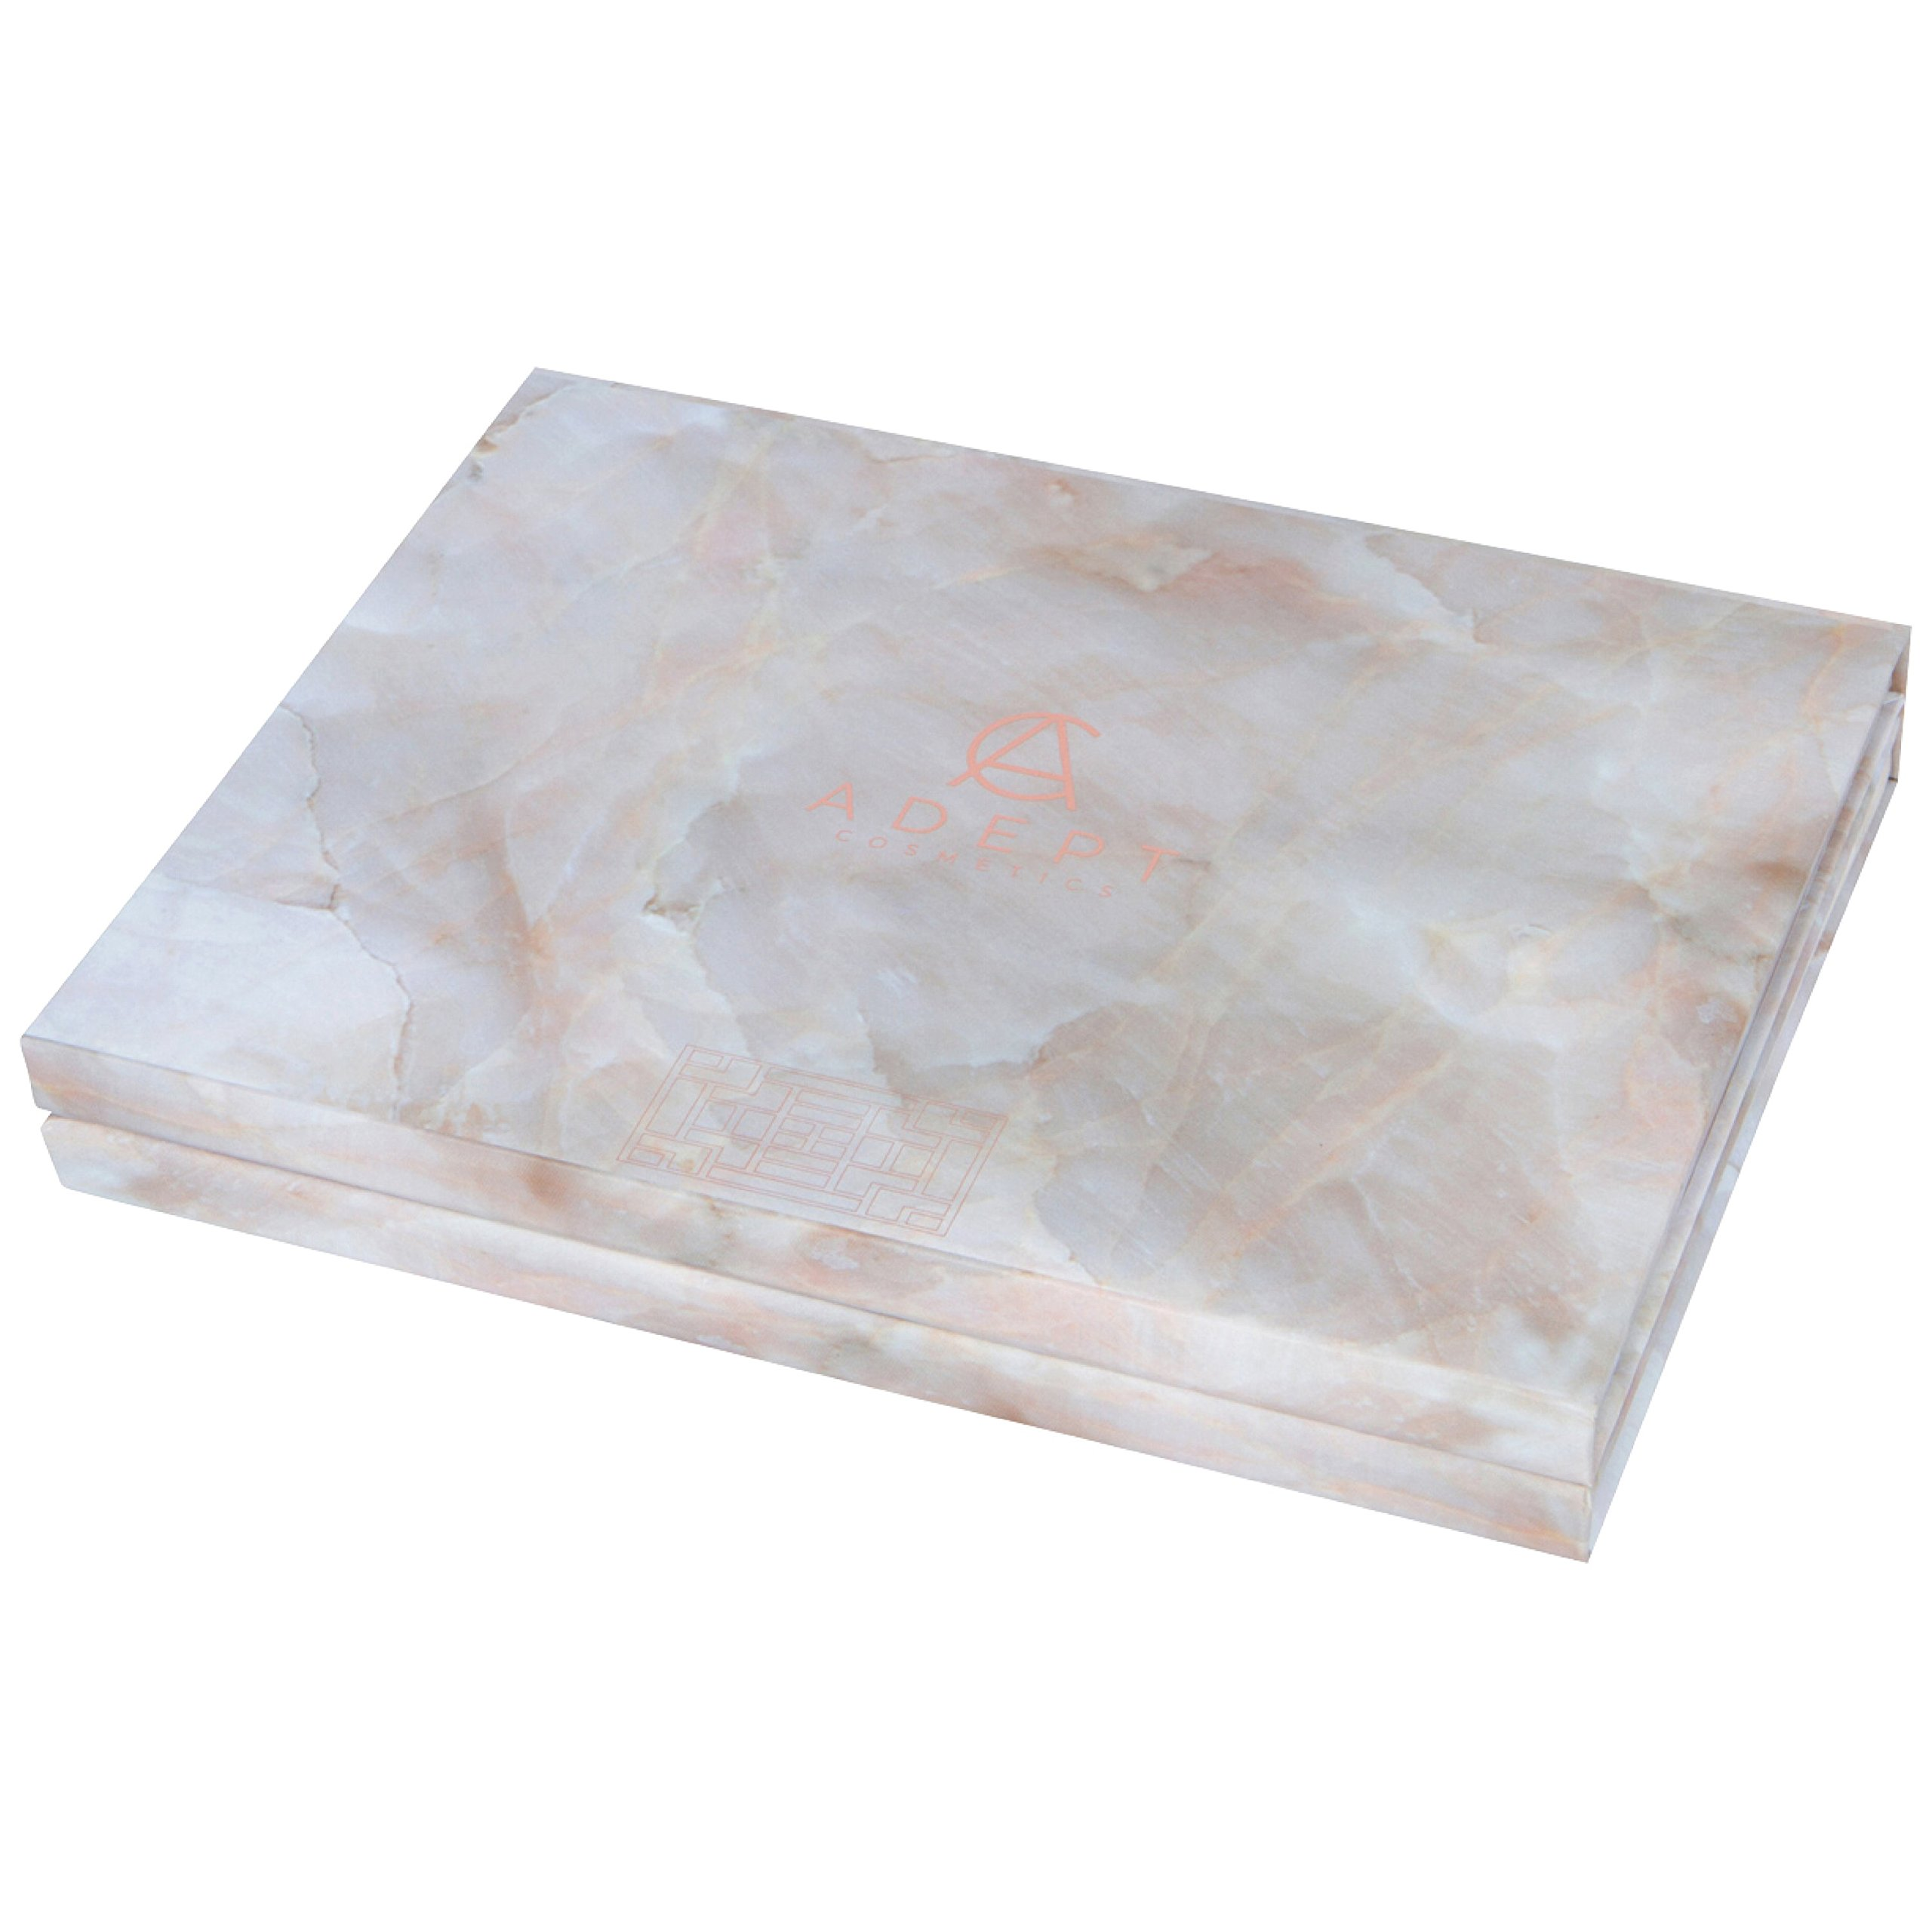 Marble Extra Large Empty Magnetic Makeup Palette Holds 70 Standard Magnetic Eyeshadows and Comes with FREE Magnetic Stickers. Depot your Highlighters, Blushes, Powders and more by Adept Cosmetics (Image #5)